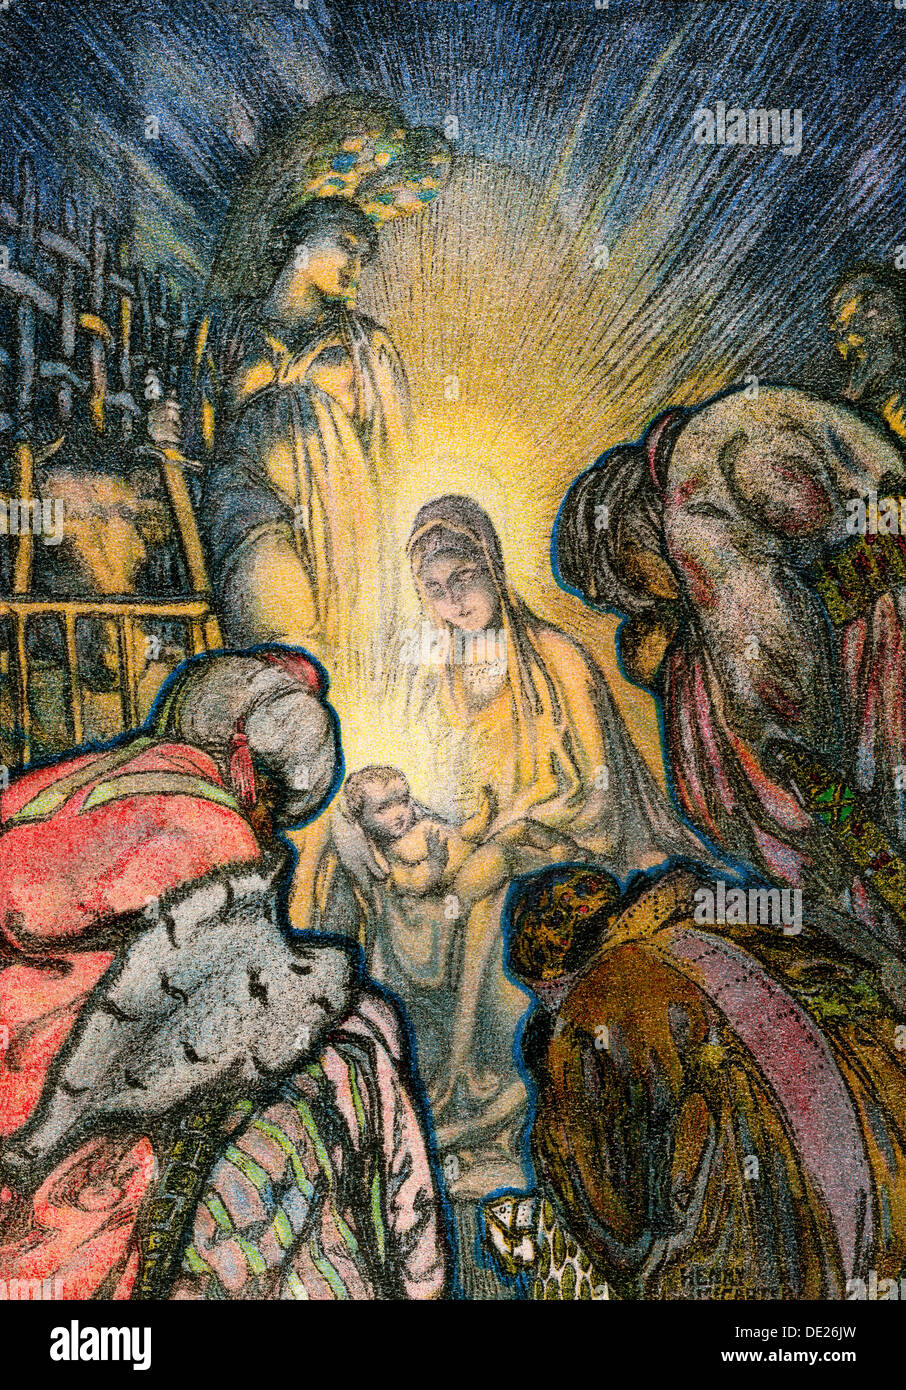 Three Kings worshiping infant Jesus in Bethlehem.Color lithograph of an illustration - Stock Image